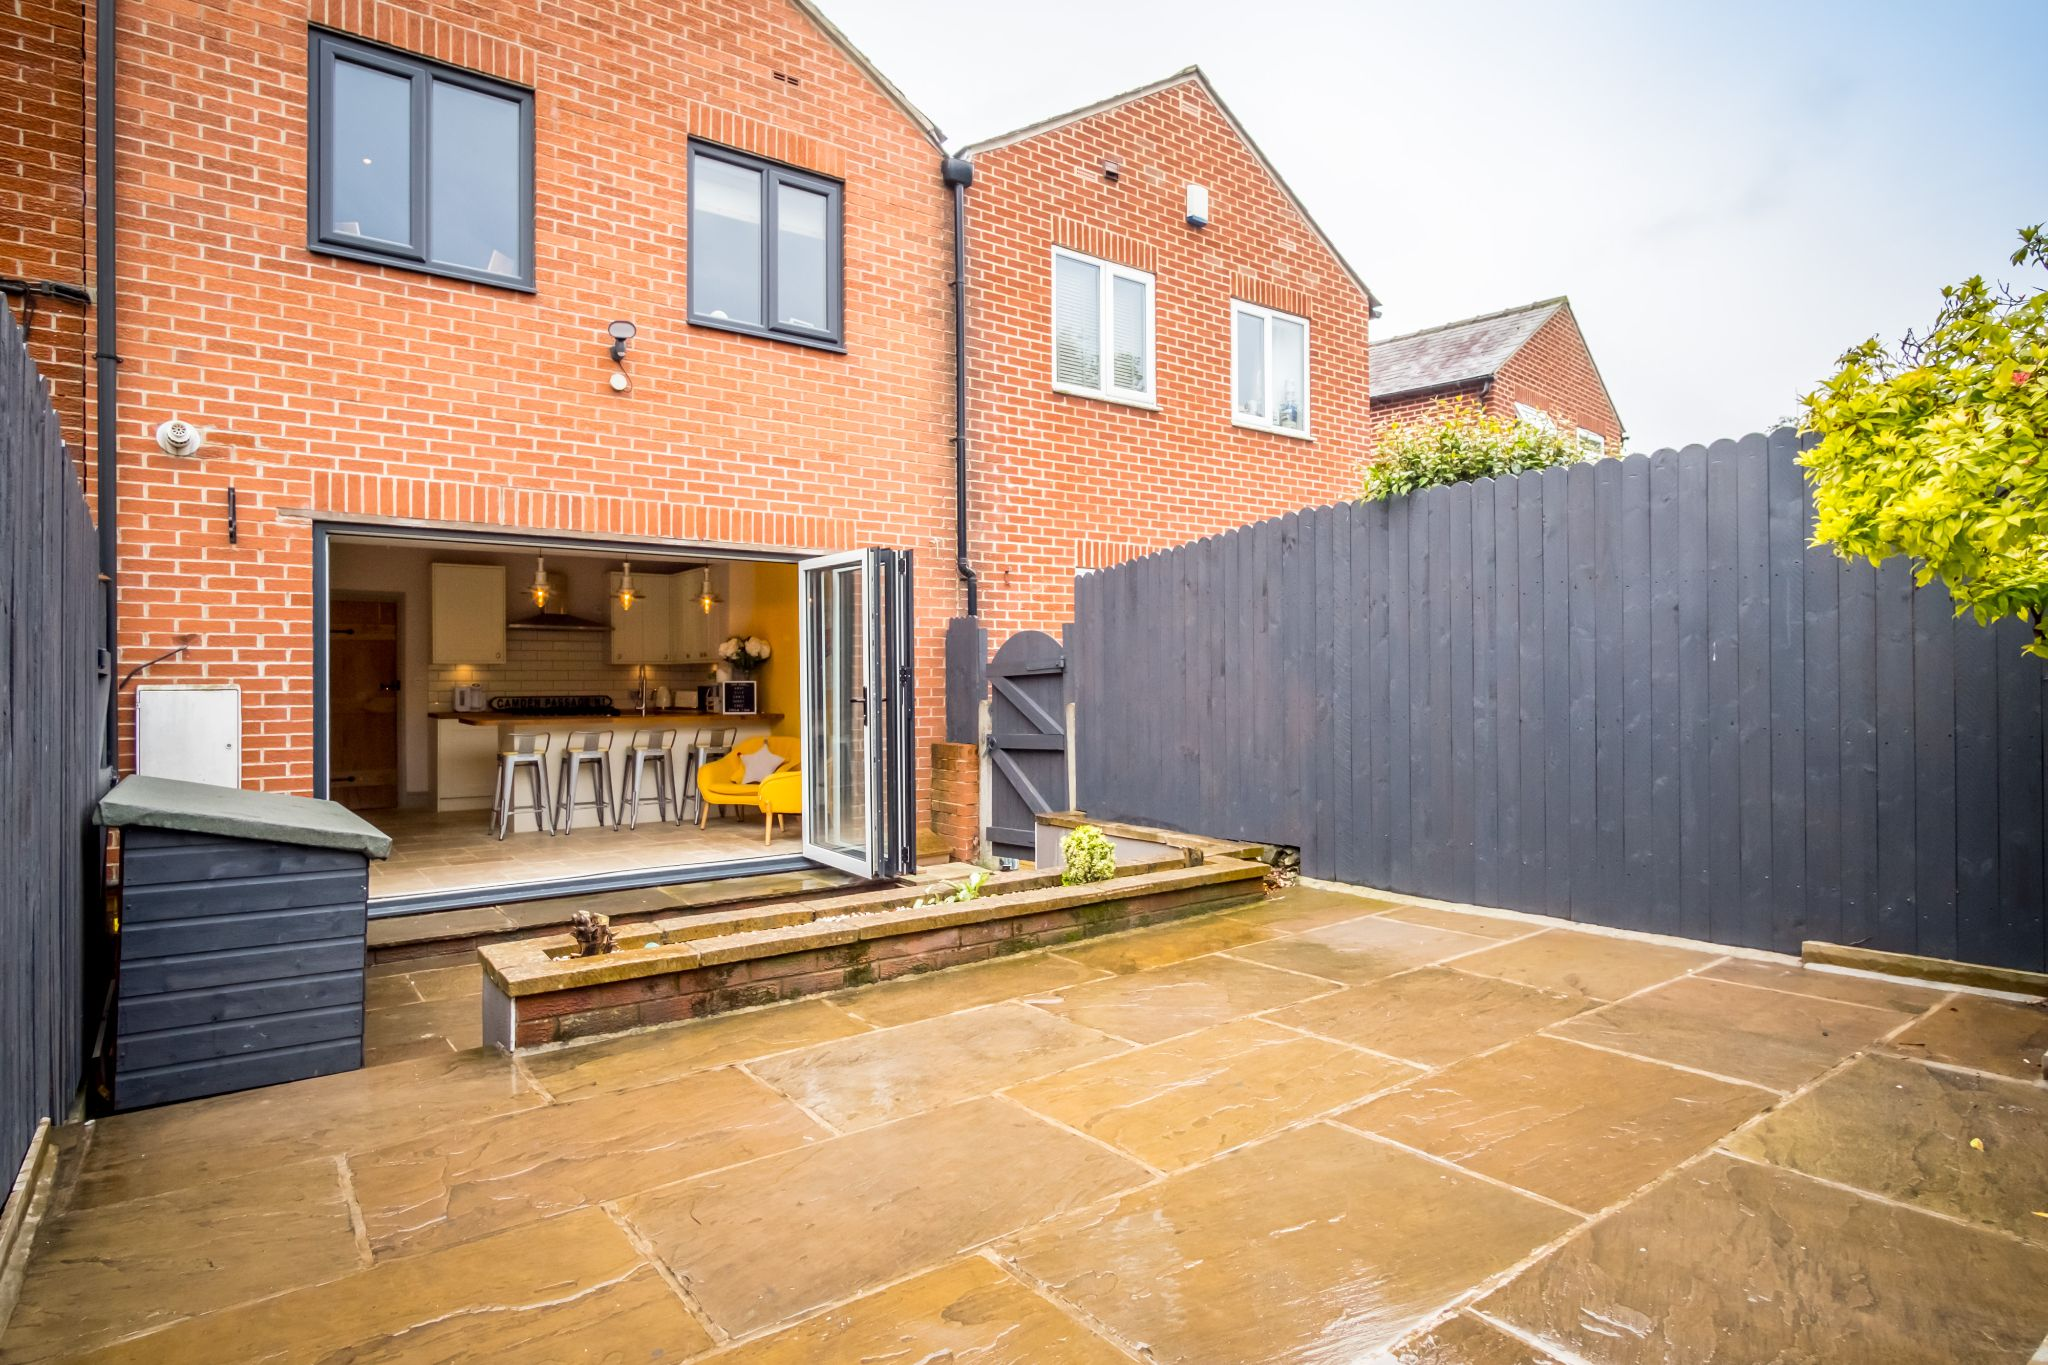 3 bedroom mid terraced house For Sale in Halifax - Patio seating area